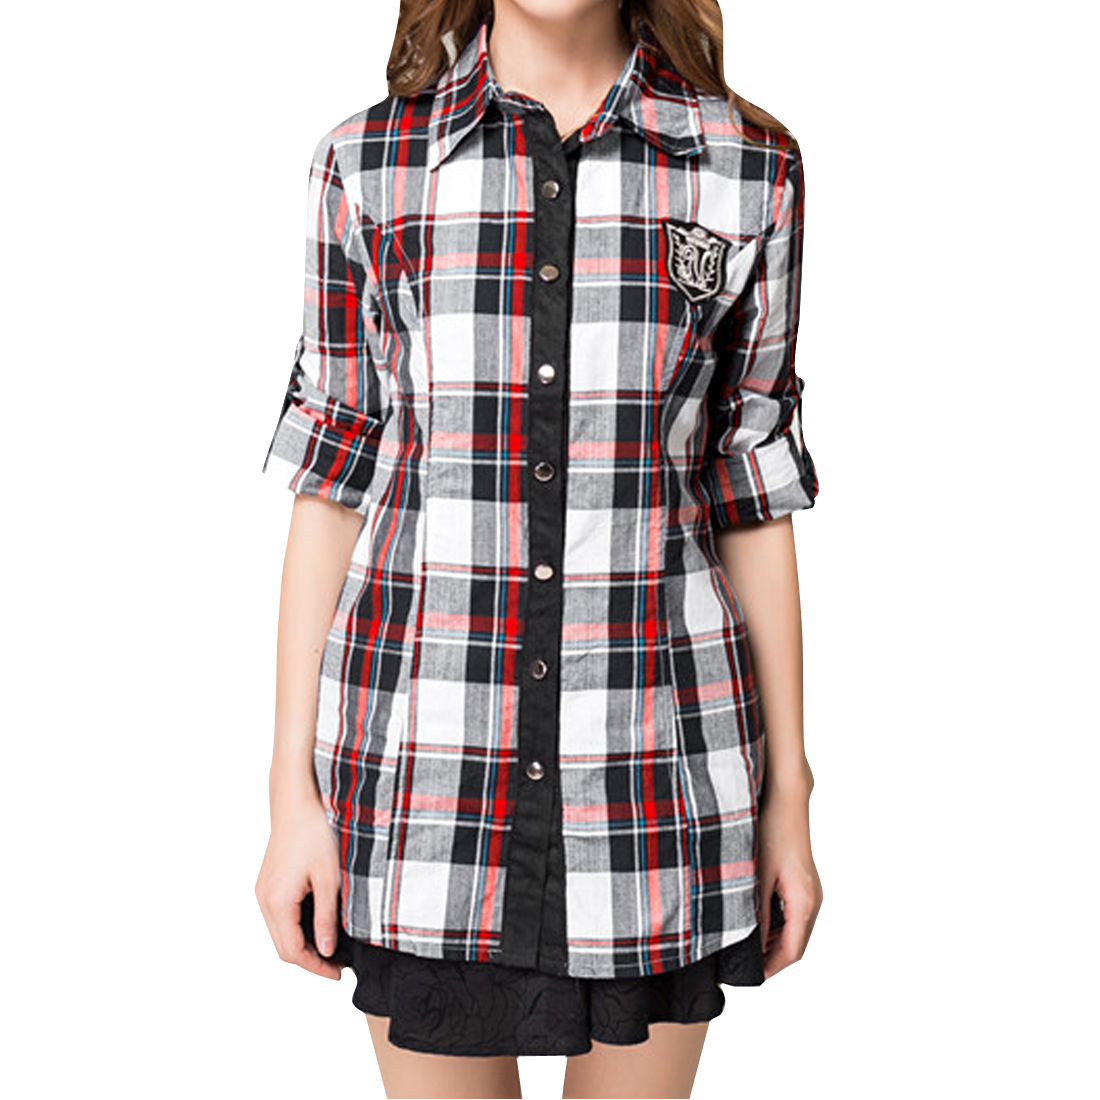 Women's Fashion Red Plaids Long Sleeve Round Hem Leisure Shirt S